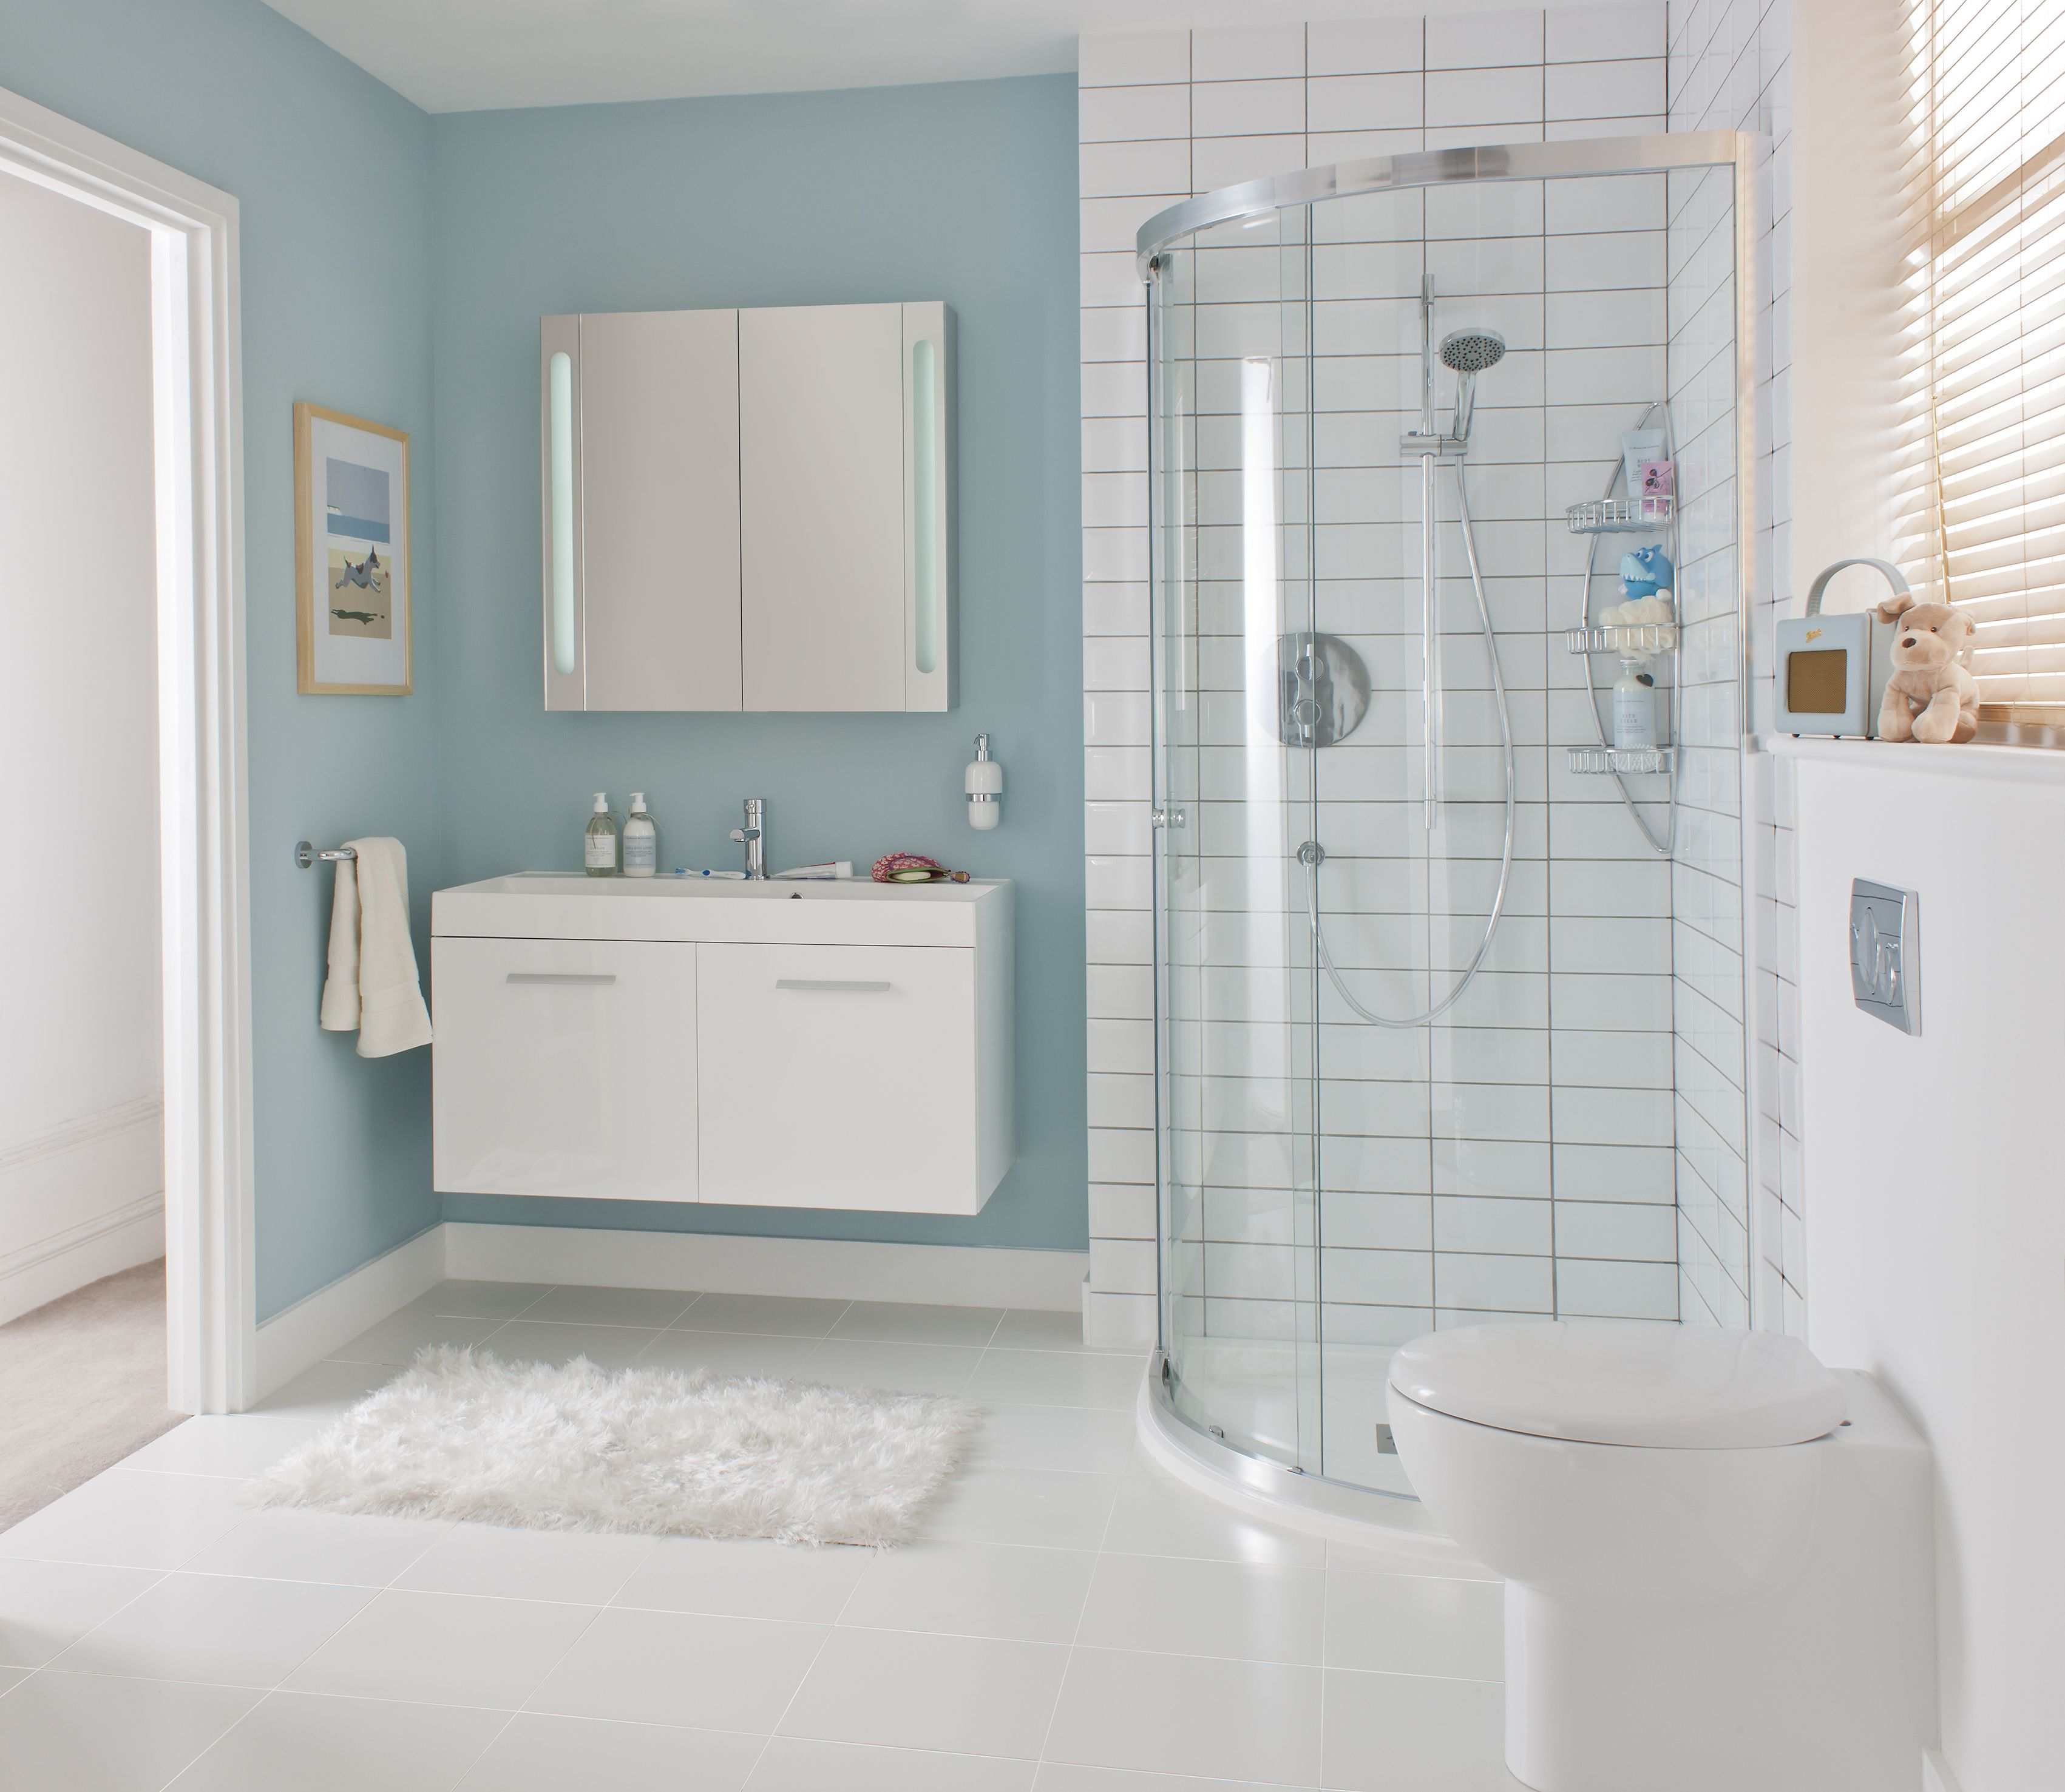 Glide II Bathroom Furniture Range from Crosswater